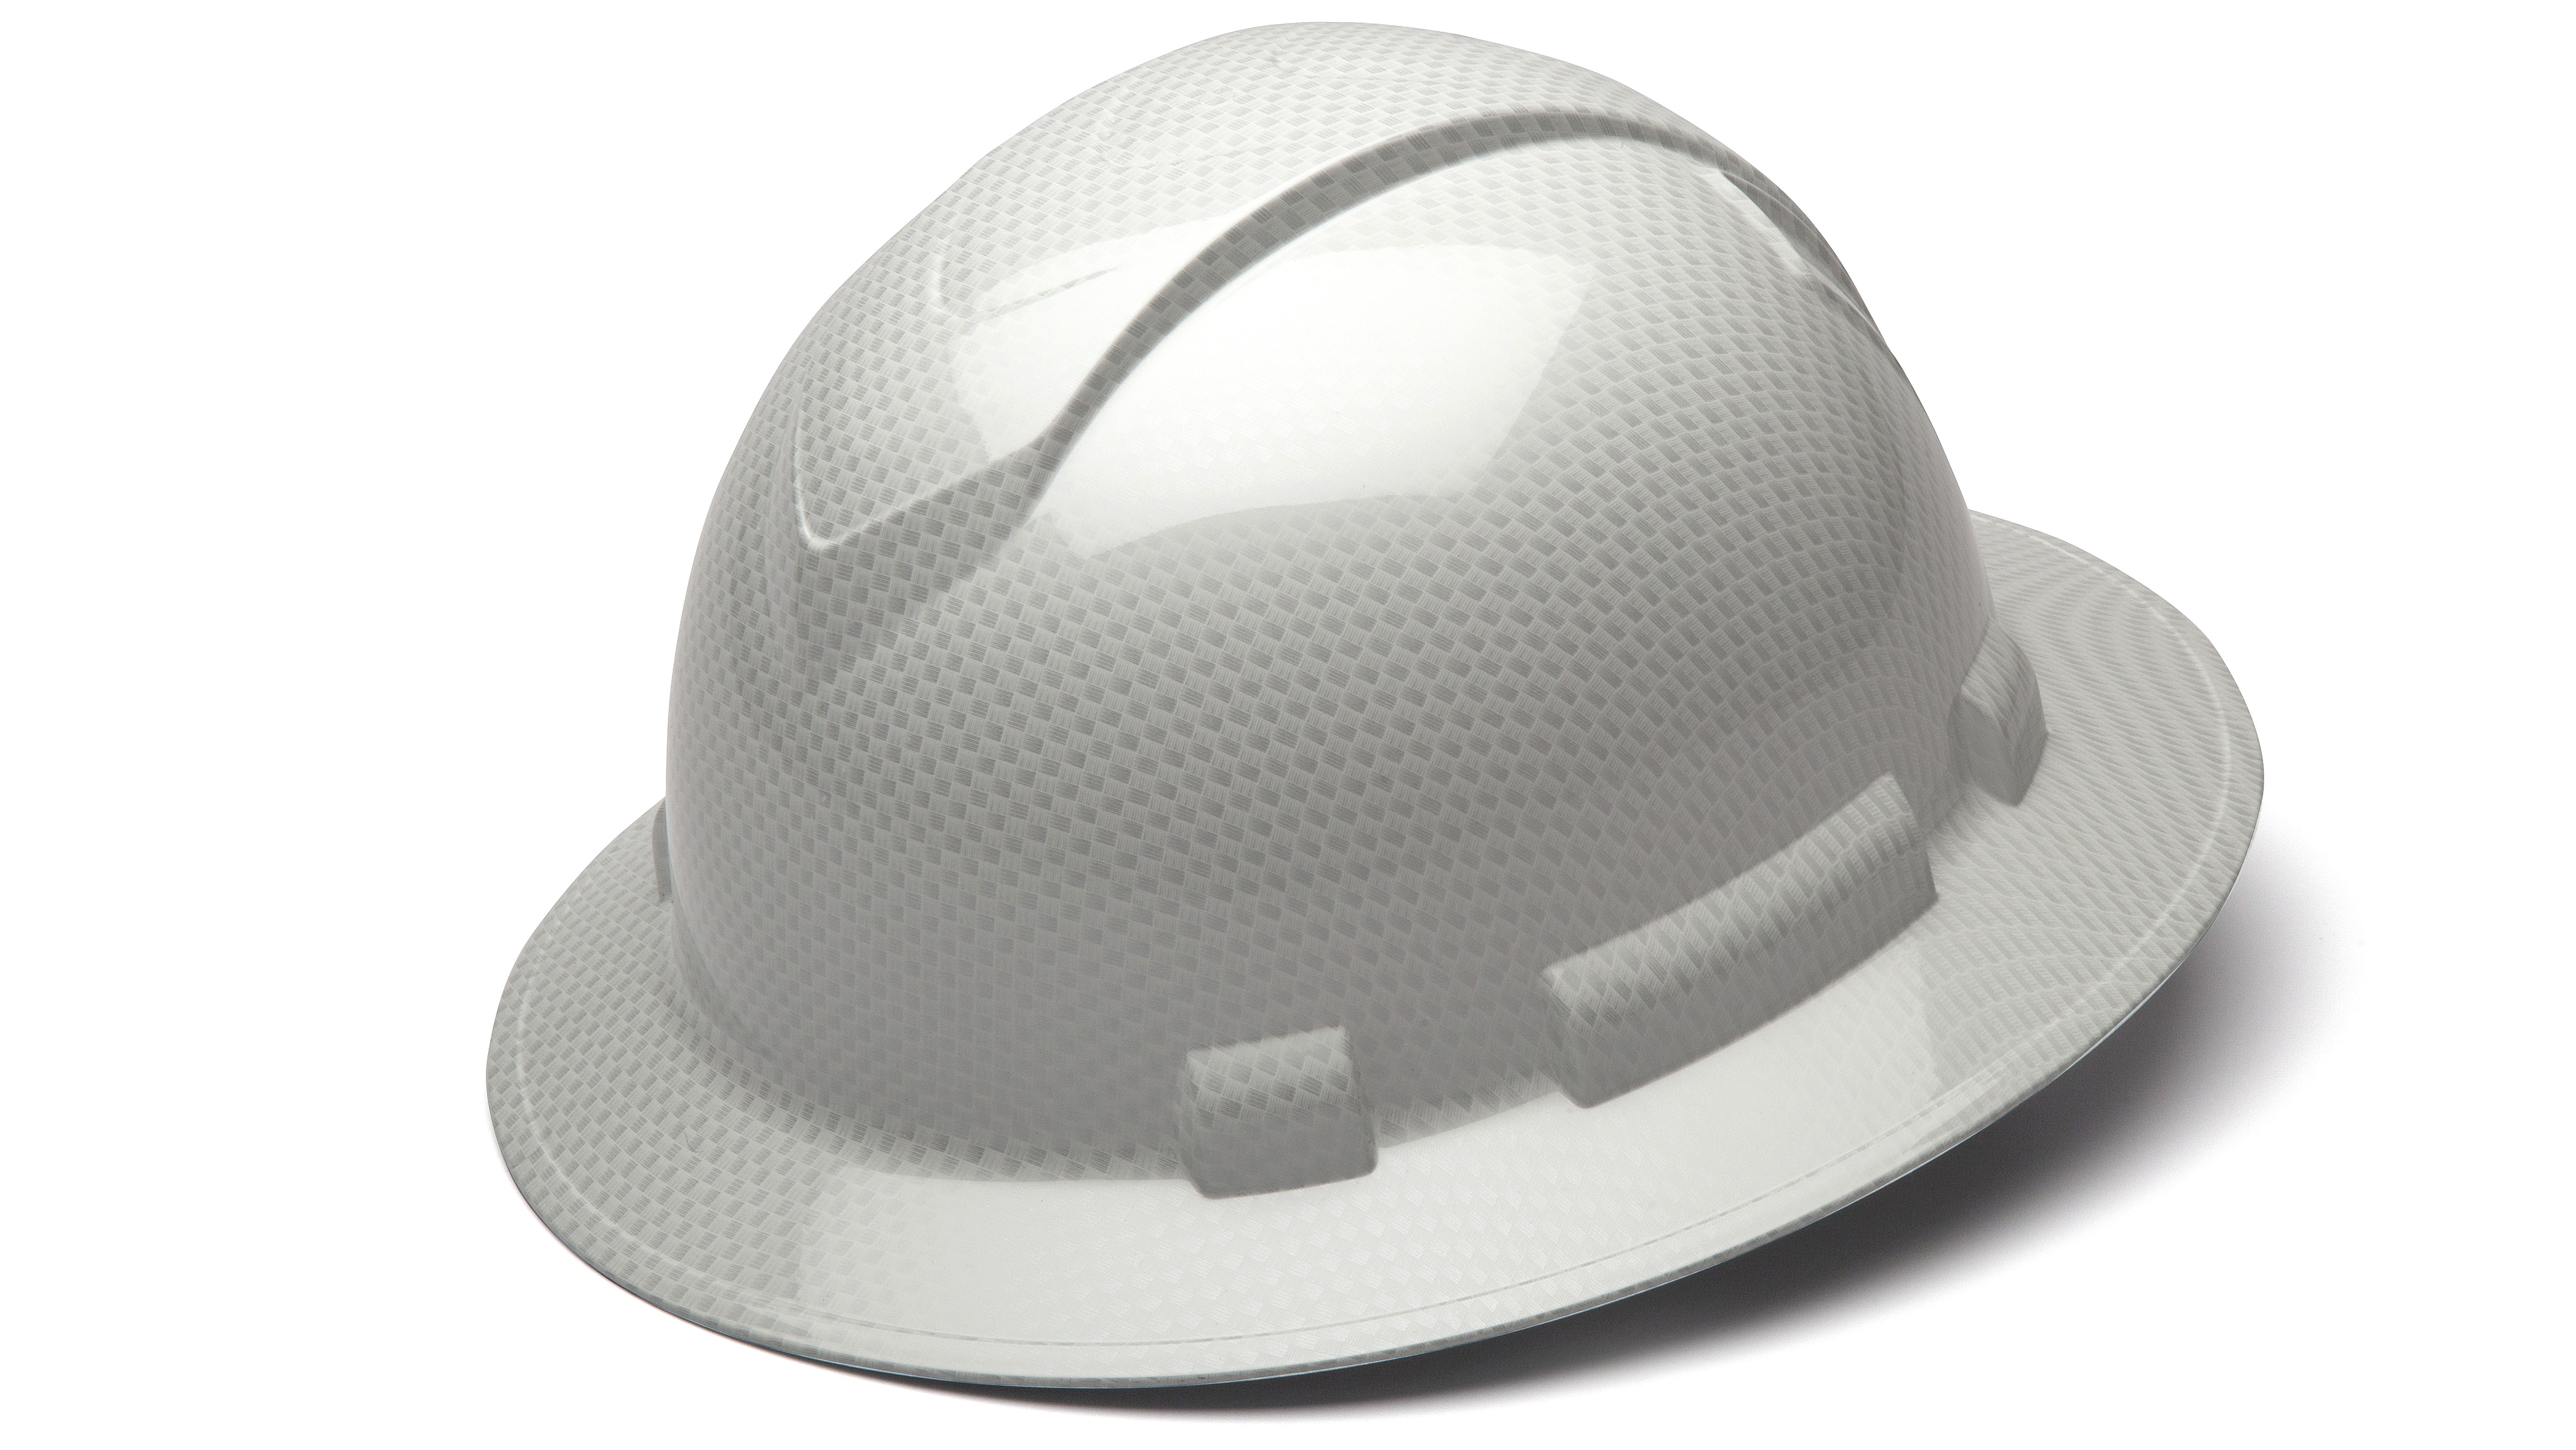 r electricians your new most look shop umicdkk what comments comforter comfortable hard does hat like hardhat